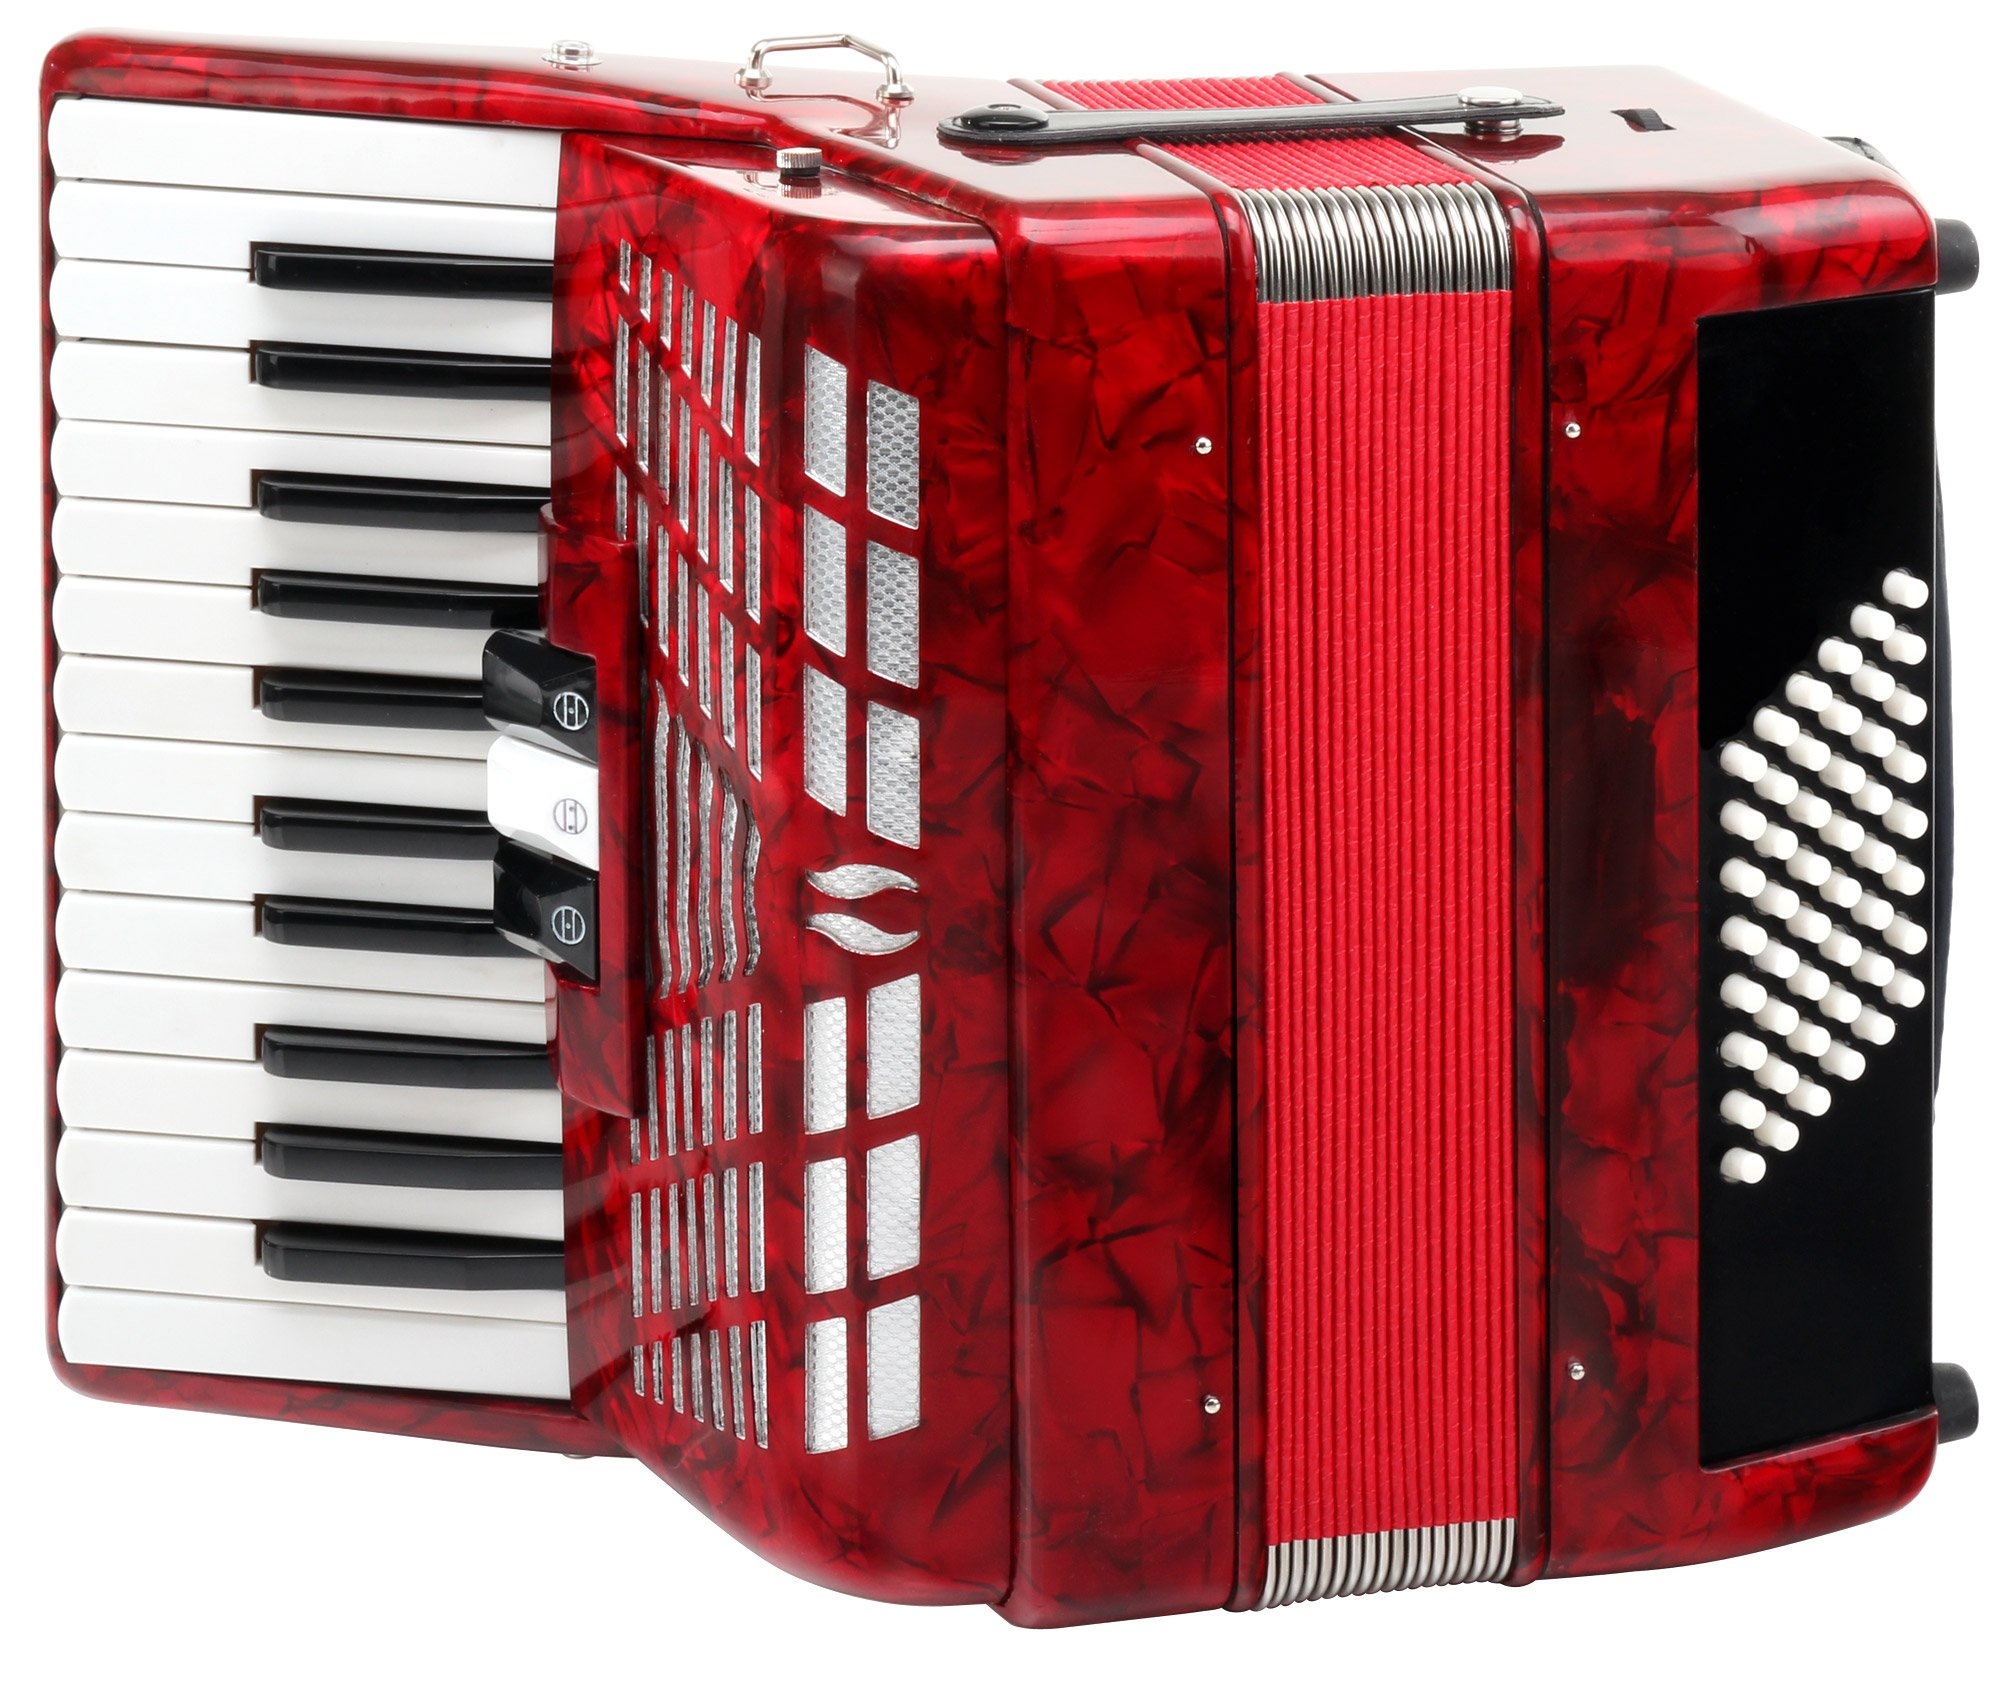 Classic Cantabile 48 Bass Accordion Secondo III Red by Classic Cantabile